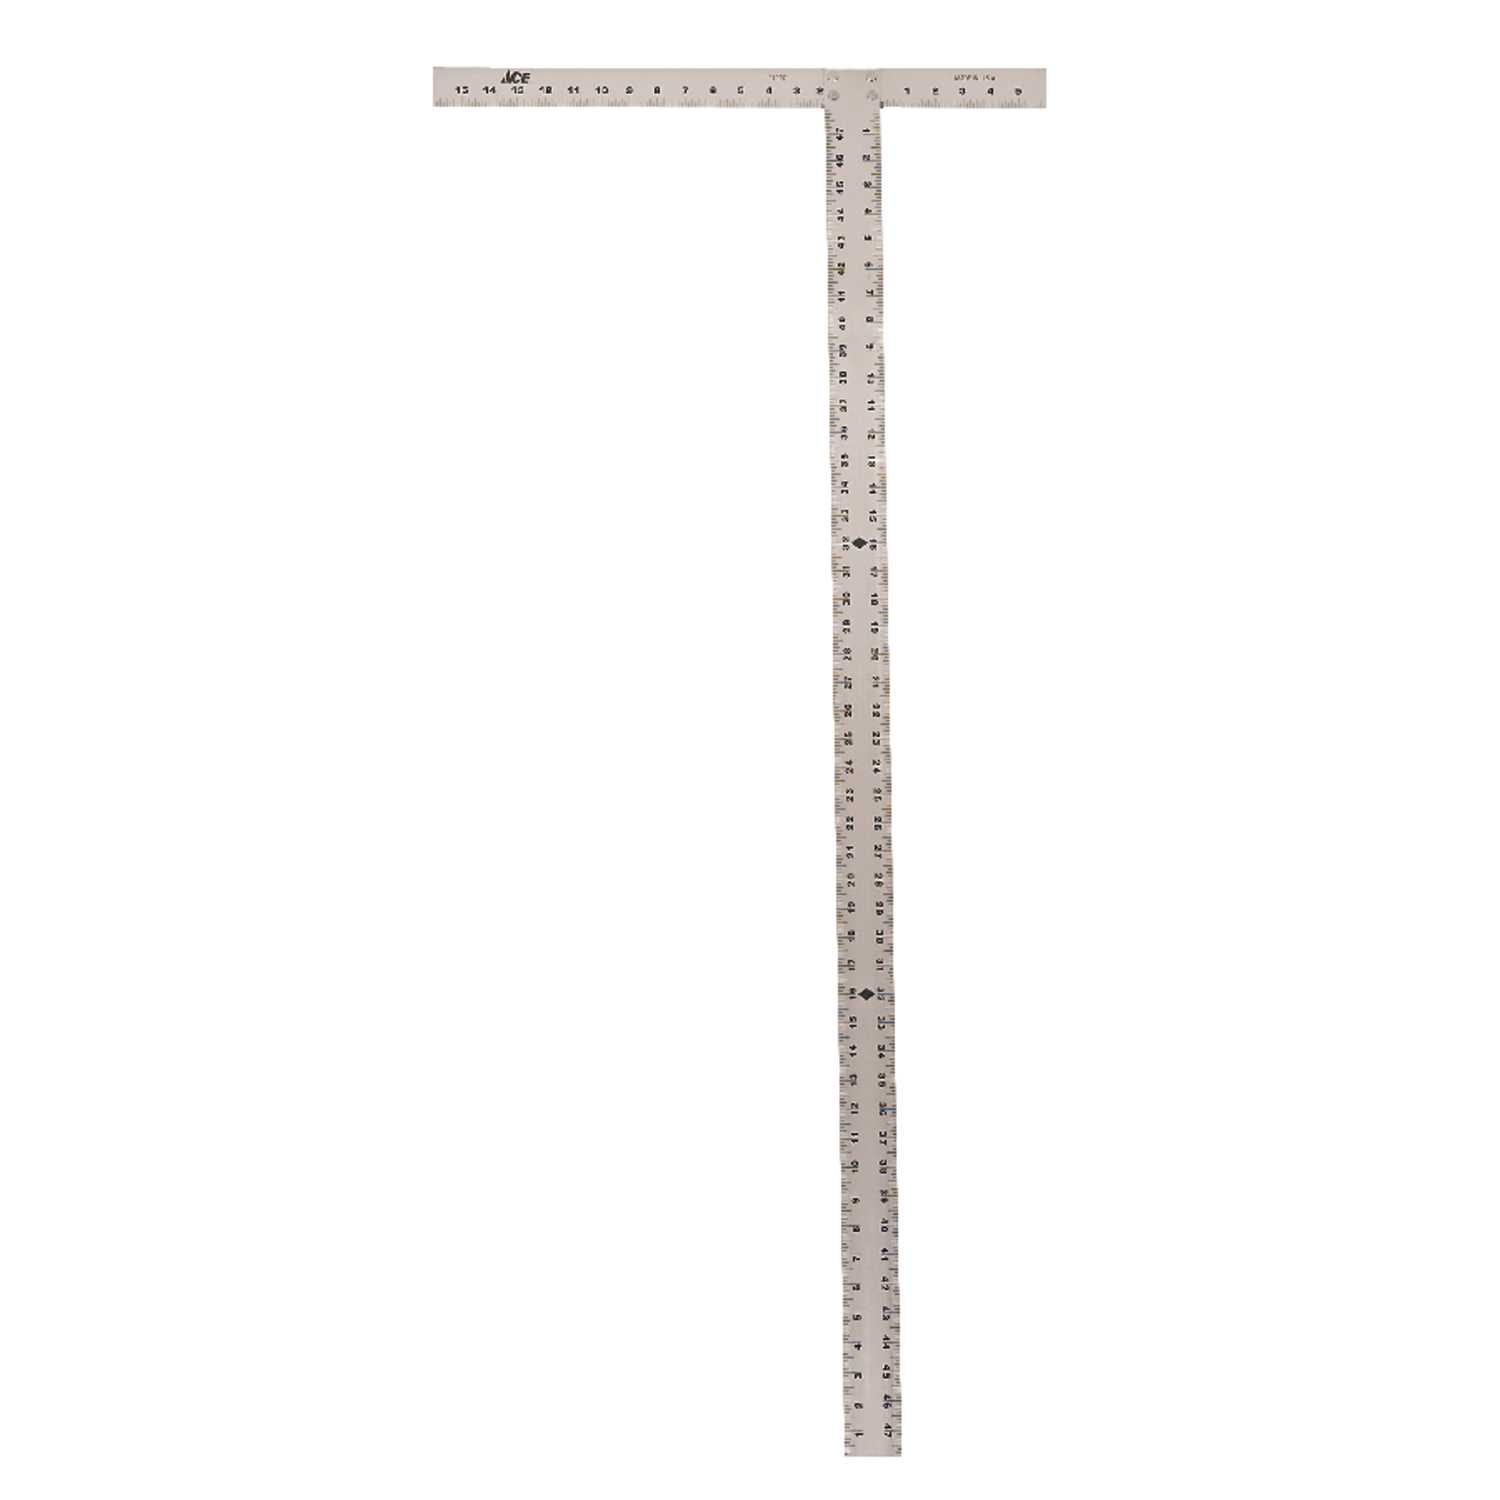 Picture of ACE 21227 Drywall T-Square, 1/8 in Graduation, Aluminum